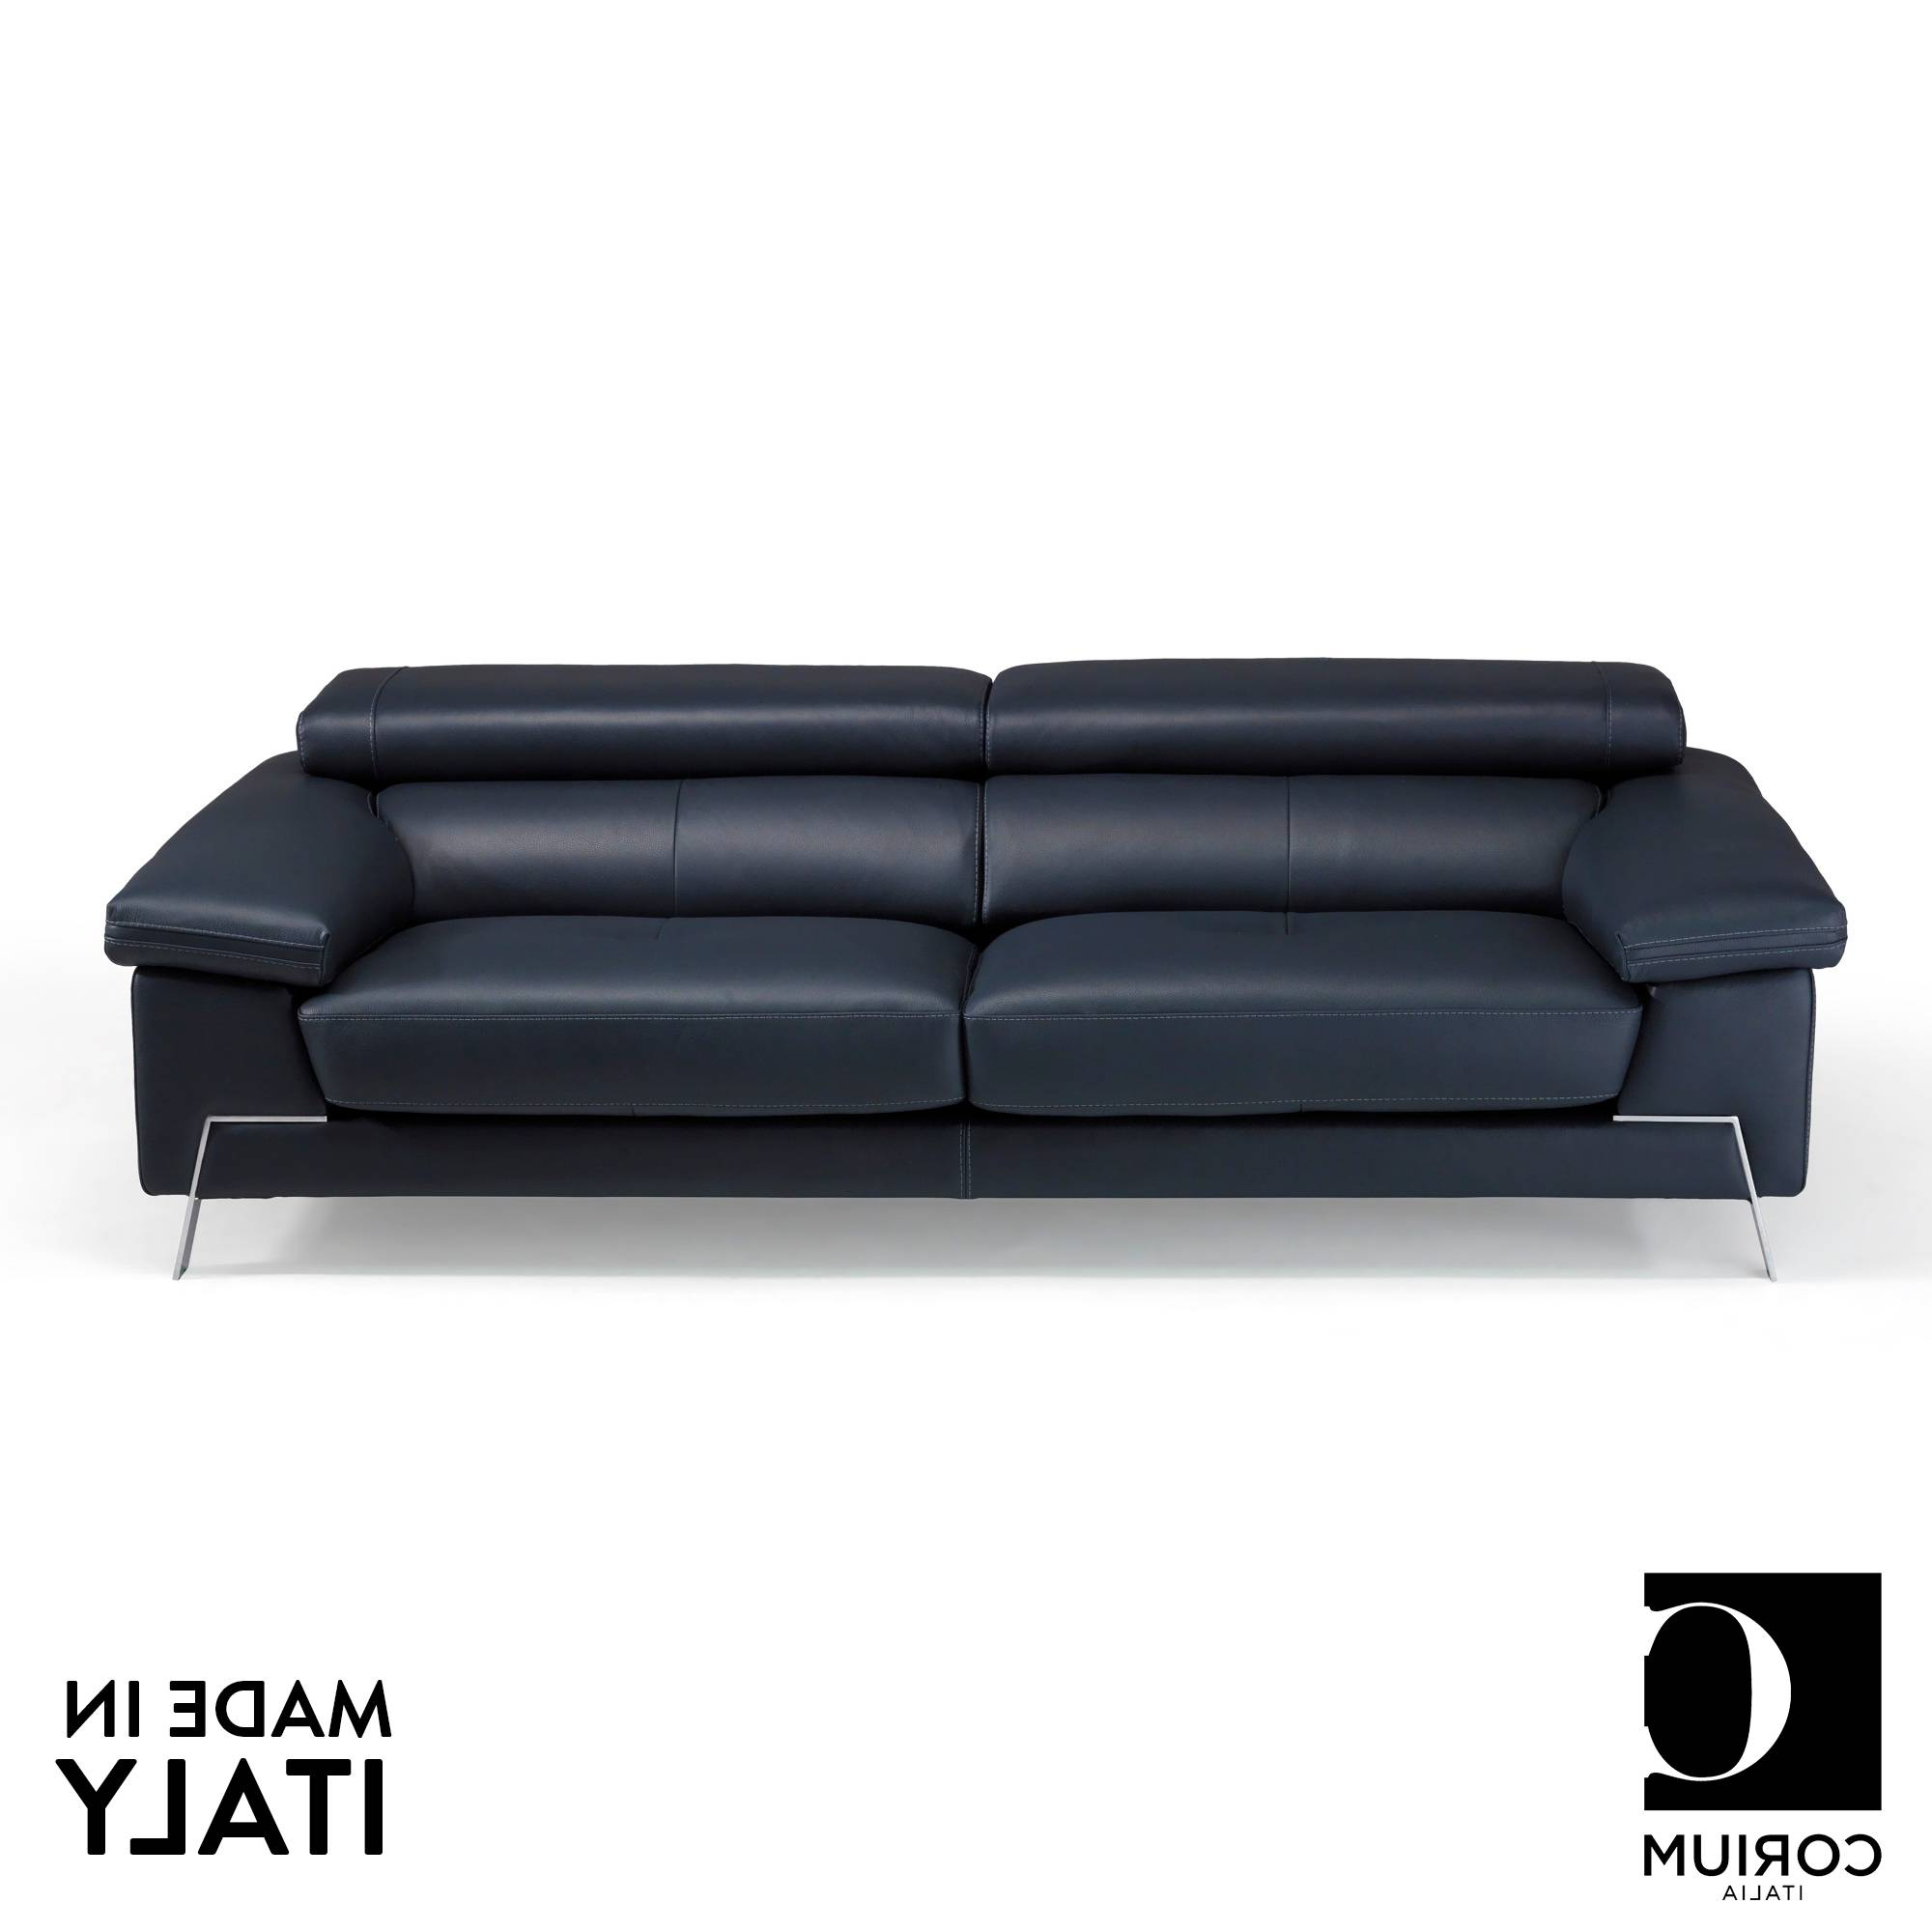 Sofas Valencia Outlet Xtd6 Leather sofa Designer Leather sofa In Singapore Om Live